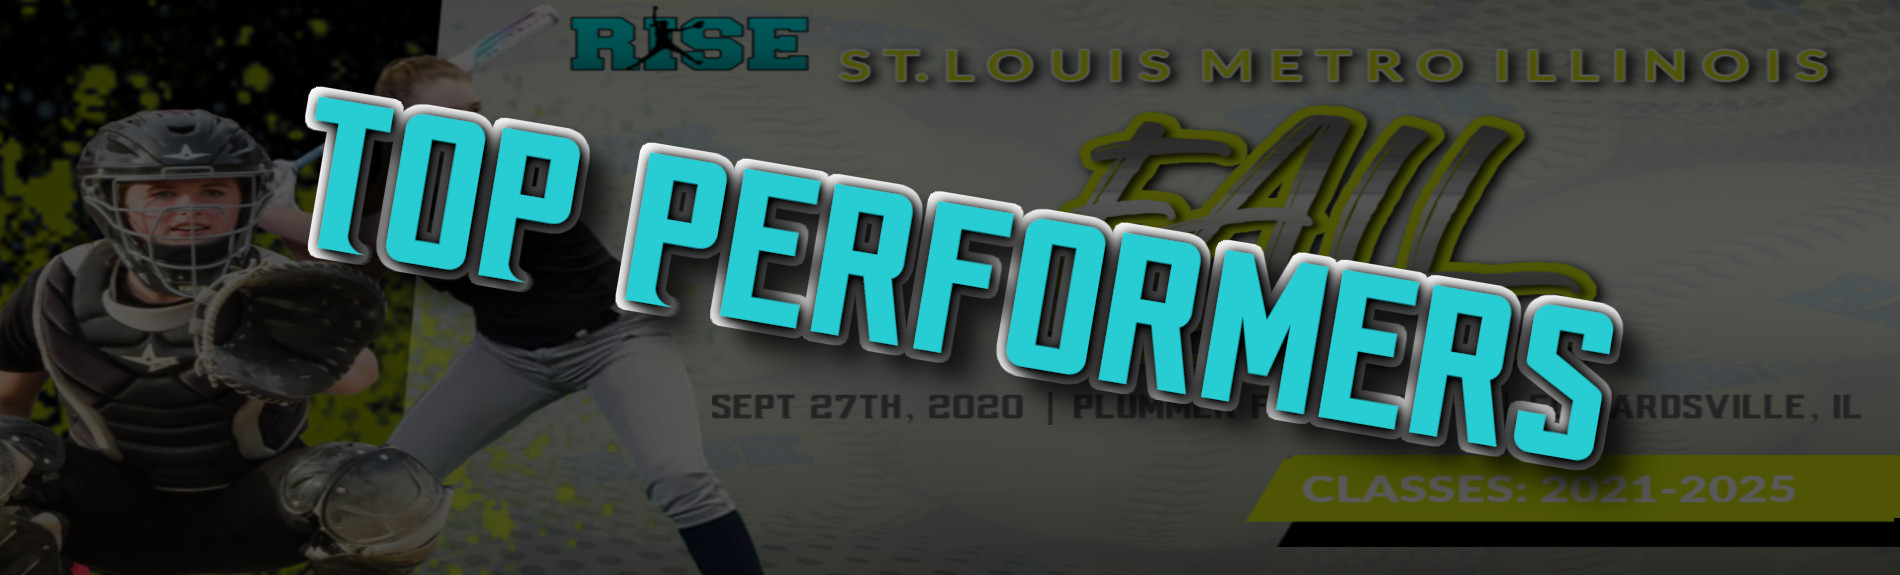 "St. Louis Metro Illinois Fall Showcase ""TOP PERFORMERS"""